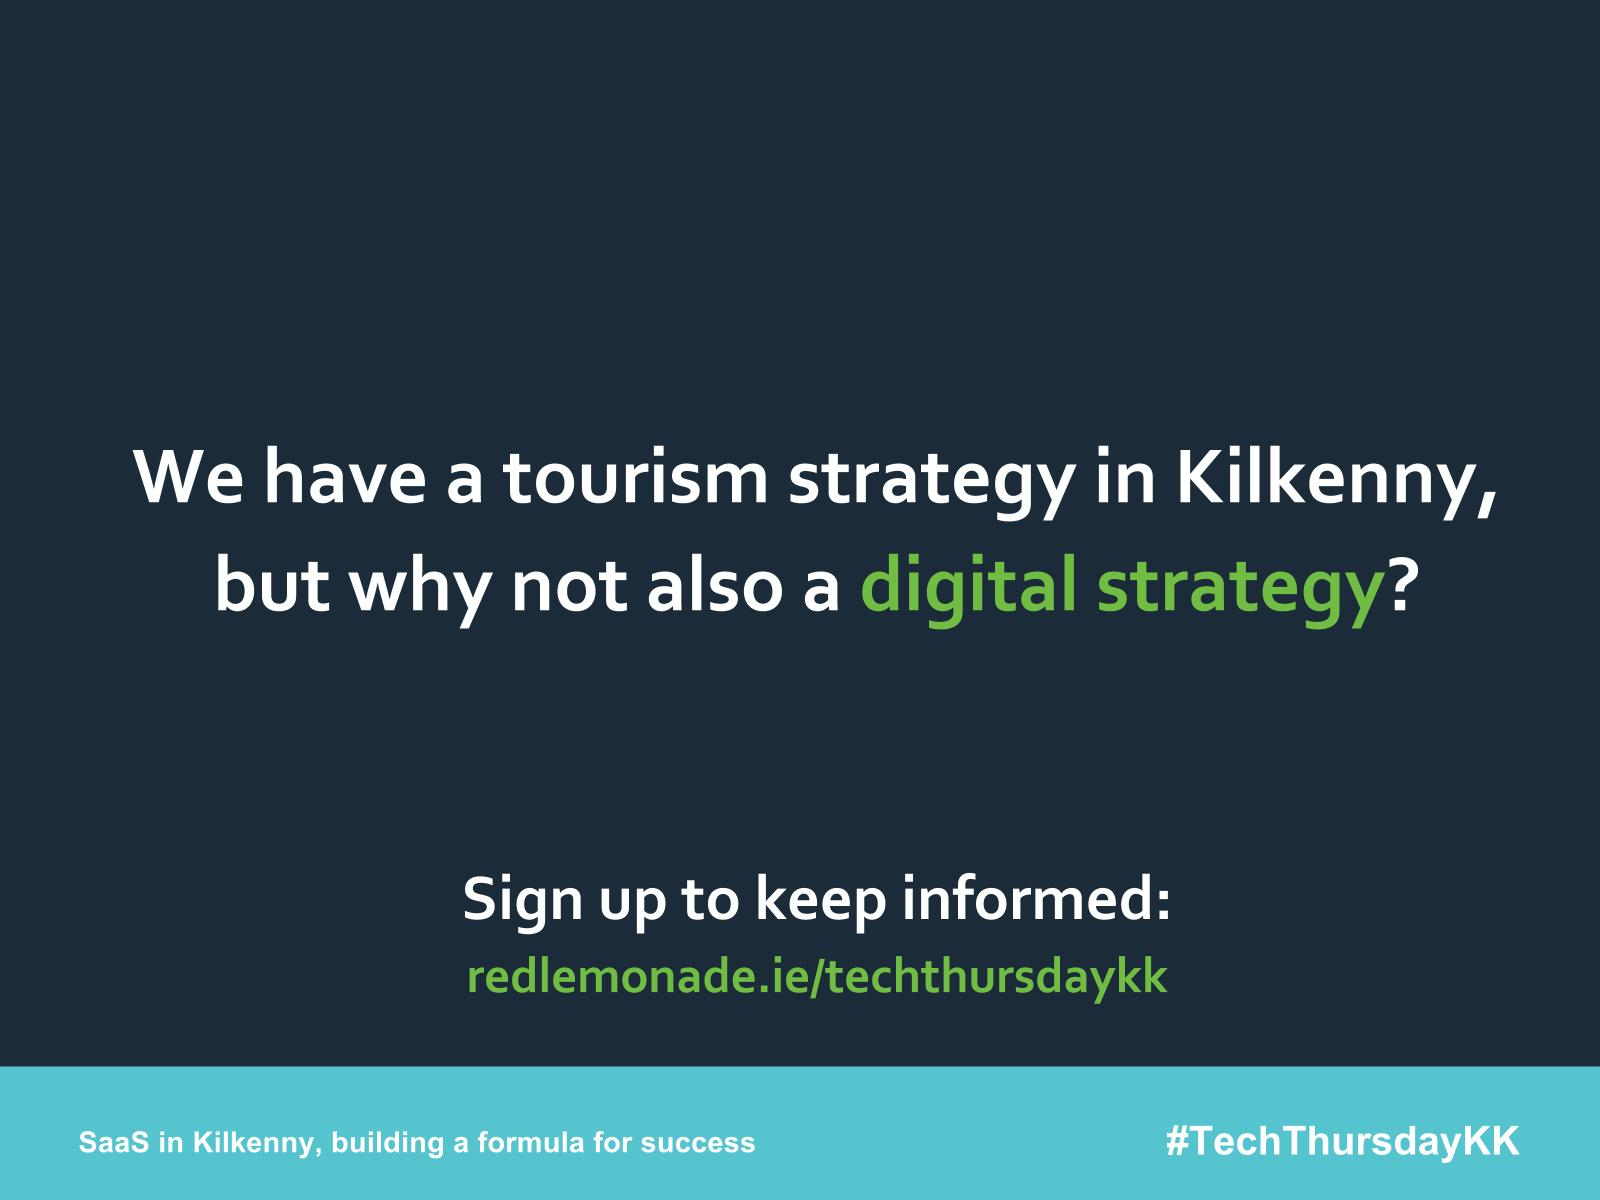 digital strategy, Kilkenny